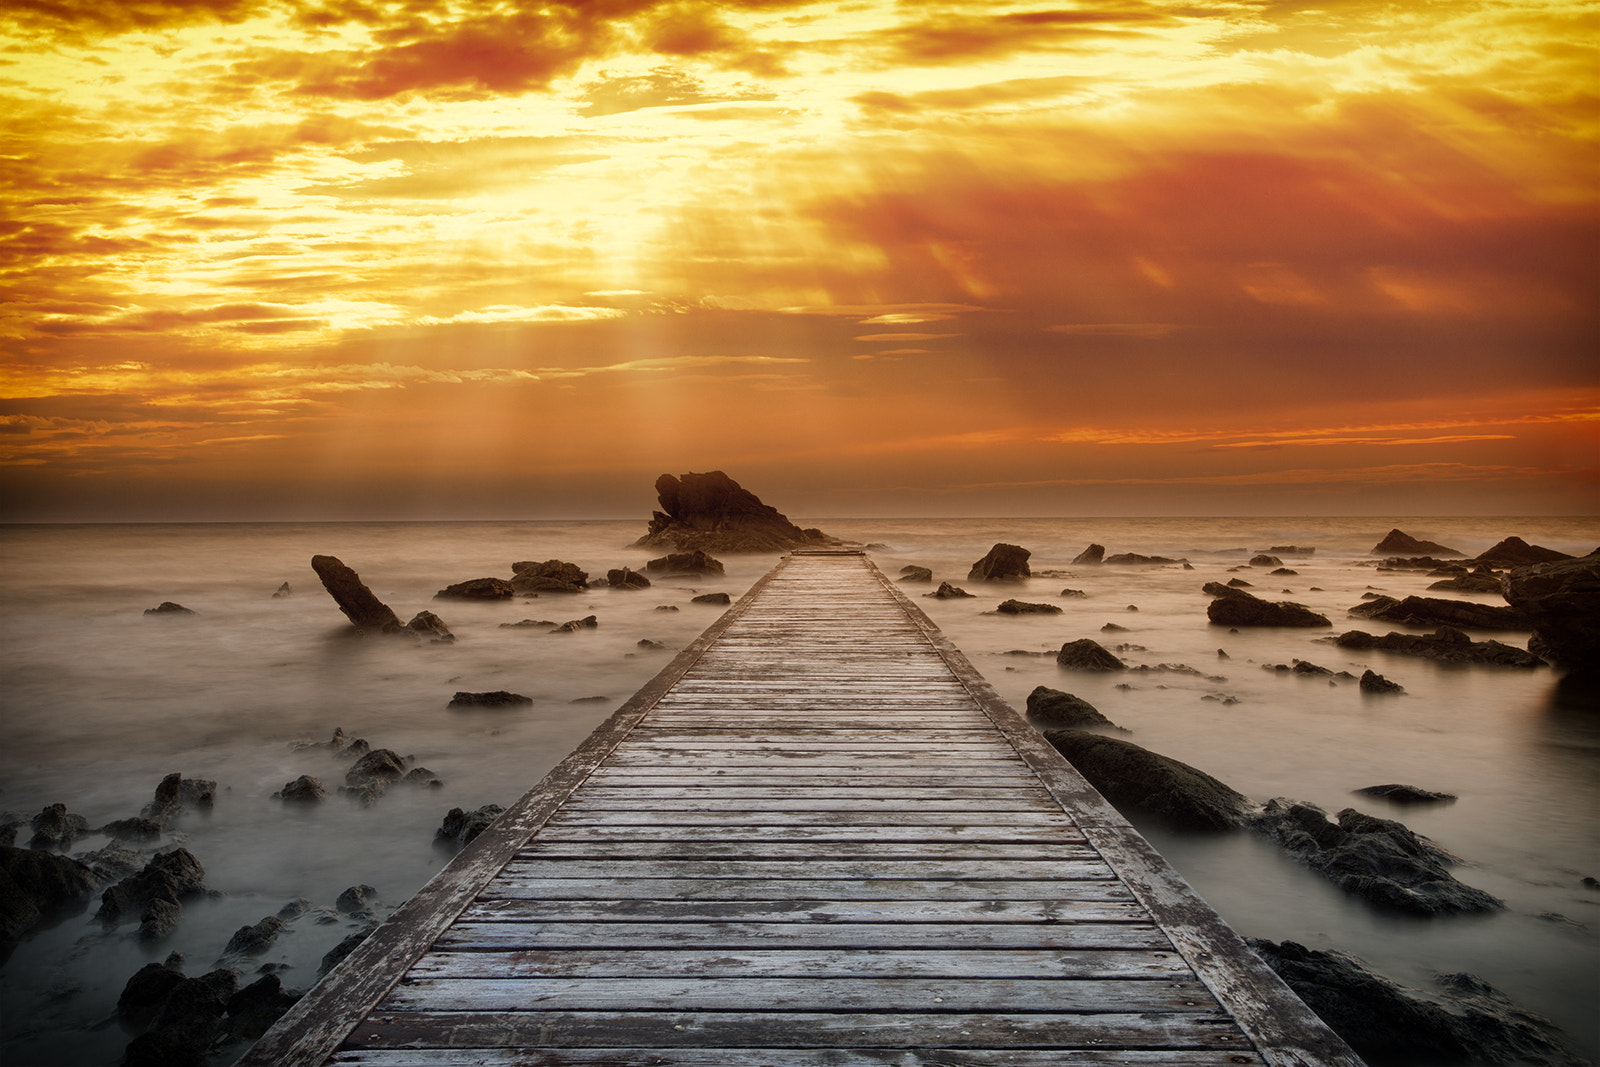 Photograph Warm Sunset by Marco Carmassi on 500px